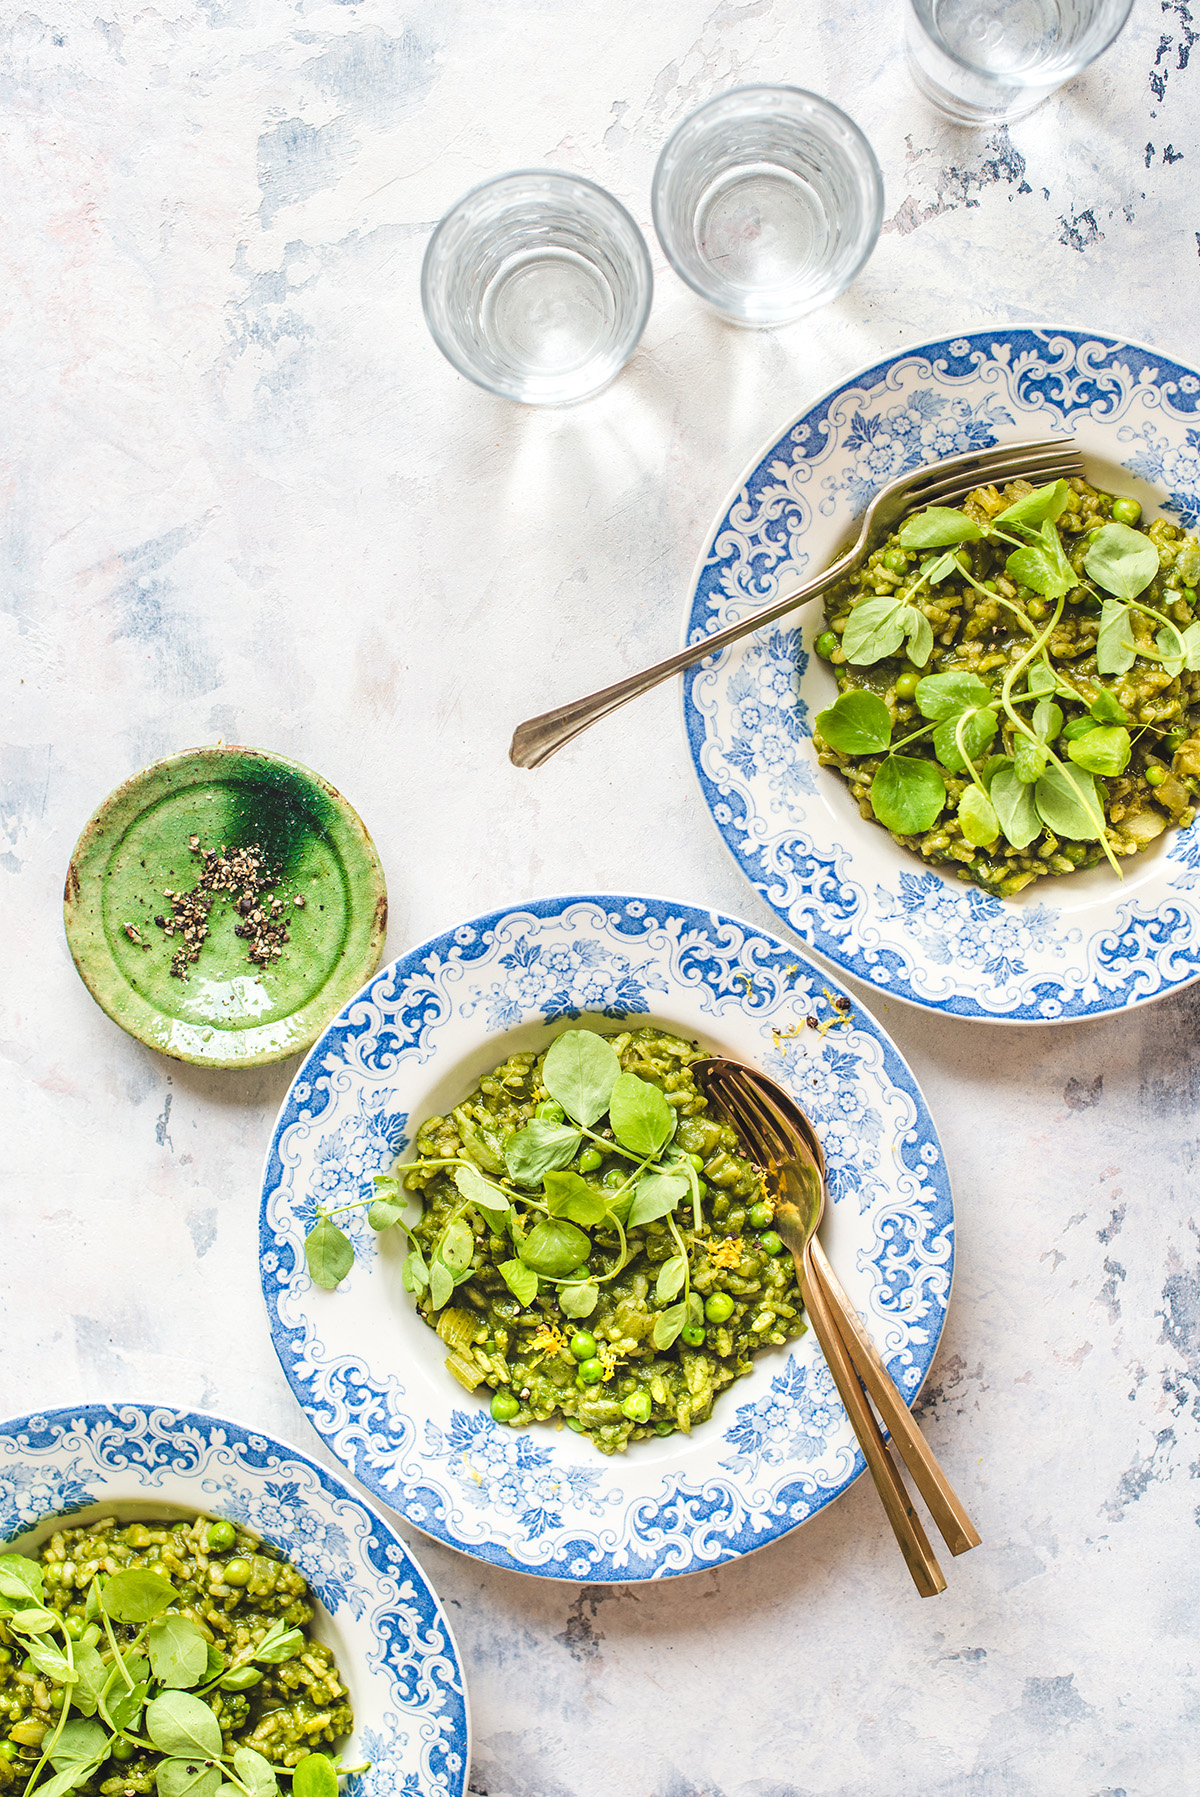 RECIPE: Green Risotto with Herby Puree